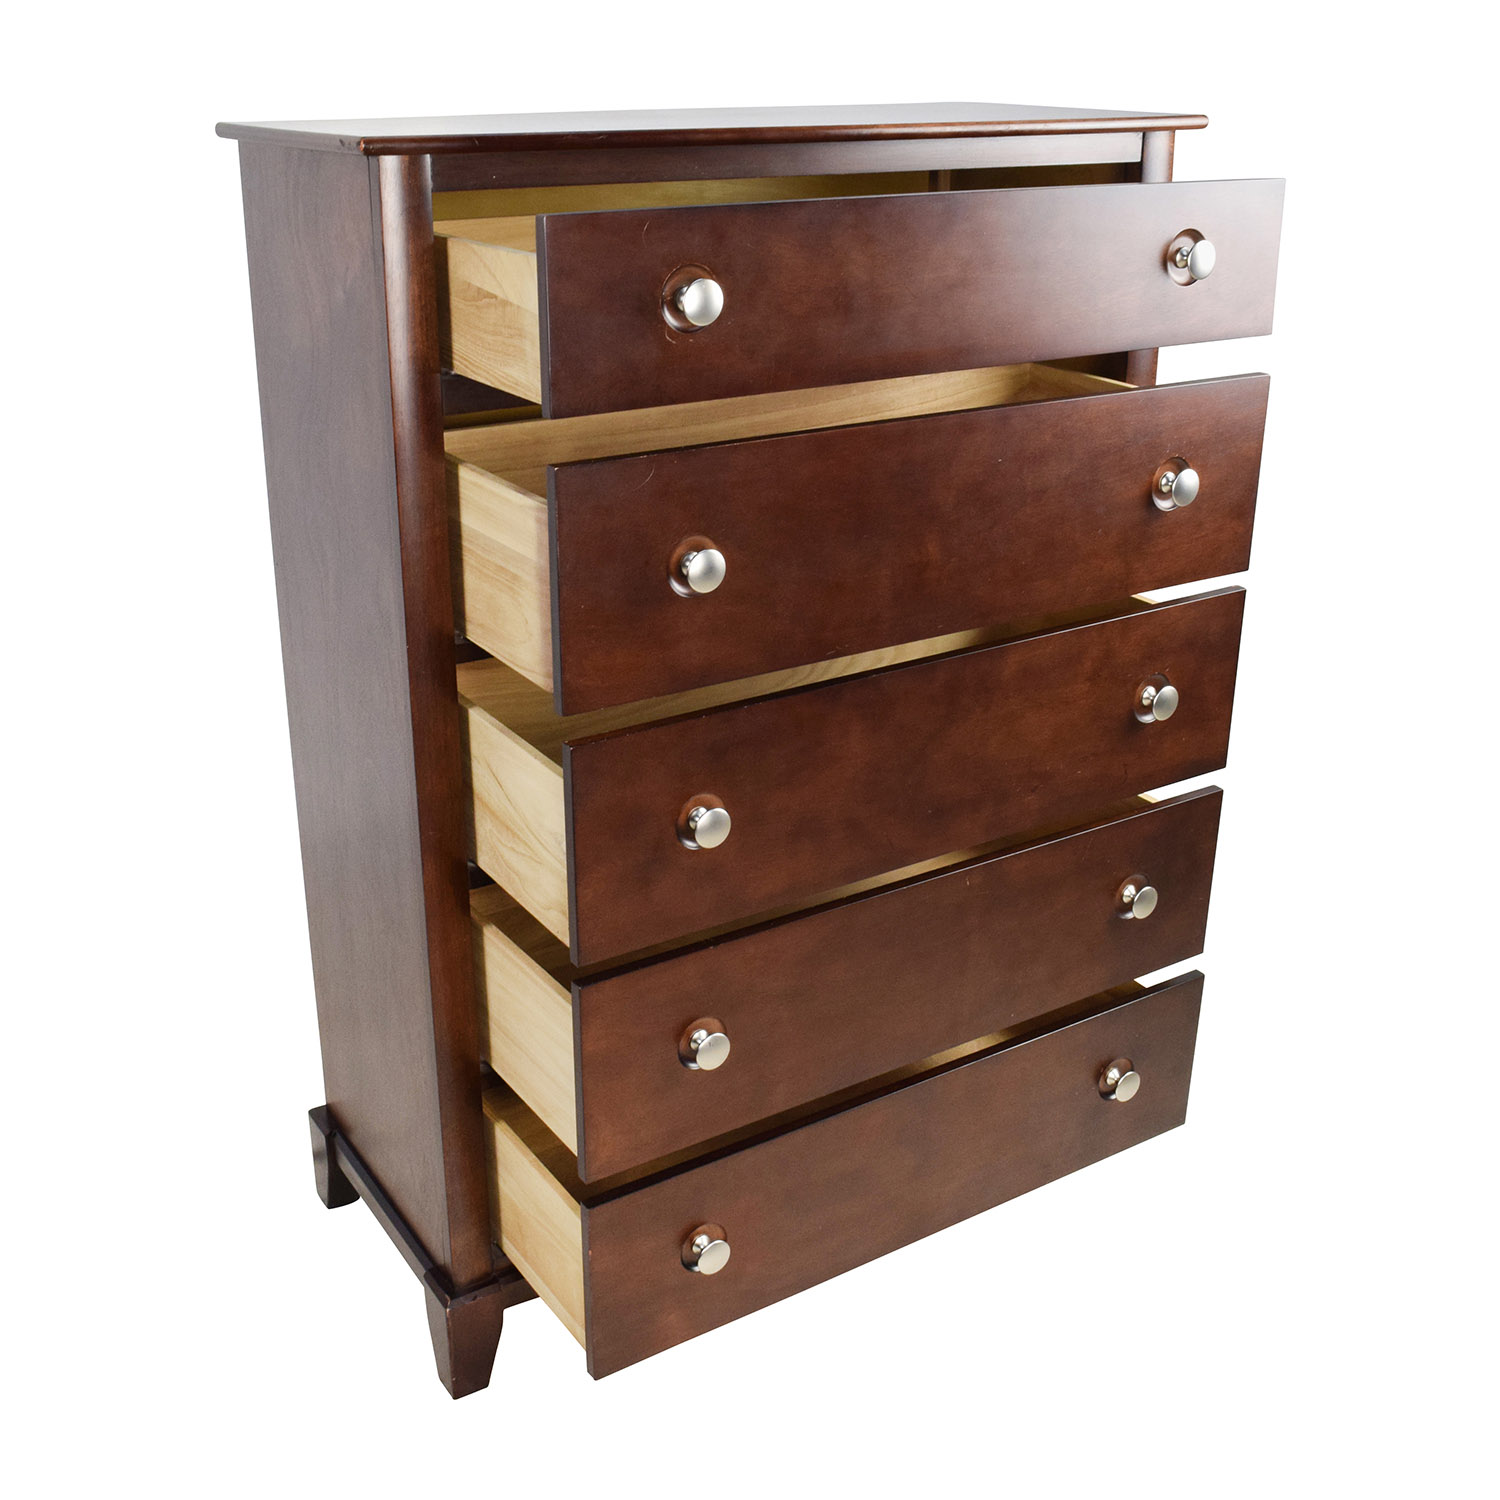 53 off solid dark wood tall dresser storage for Dark wood furniture